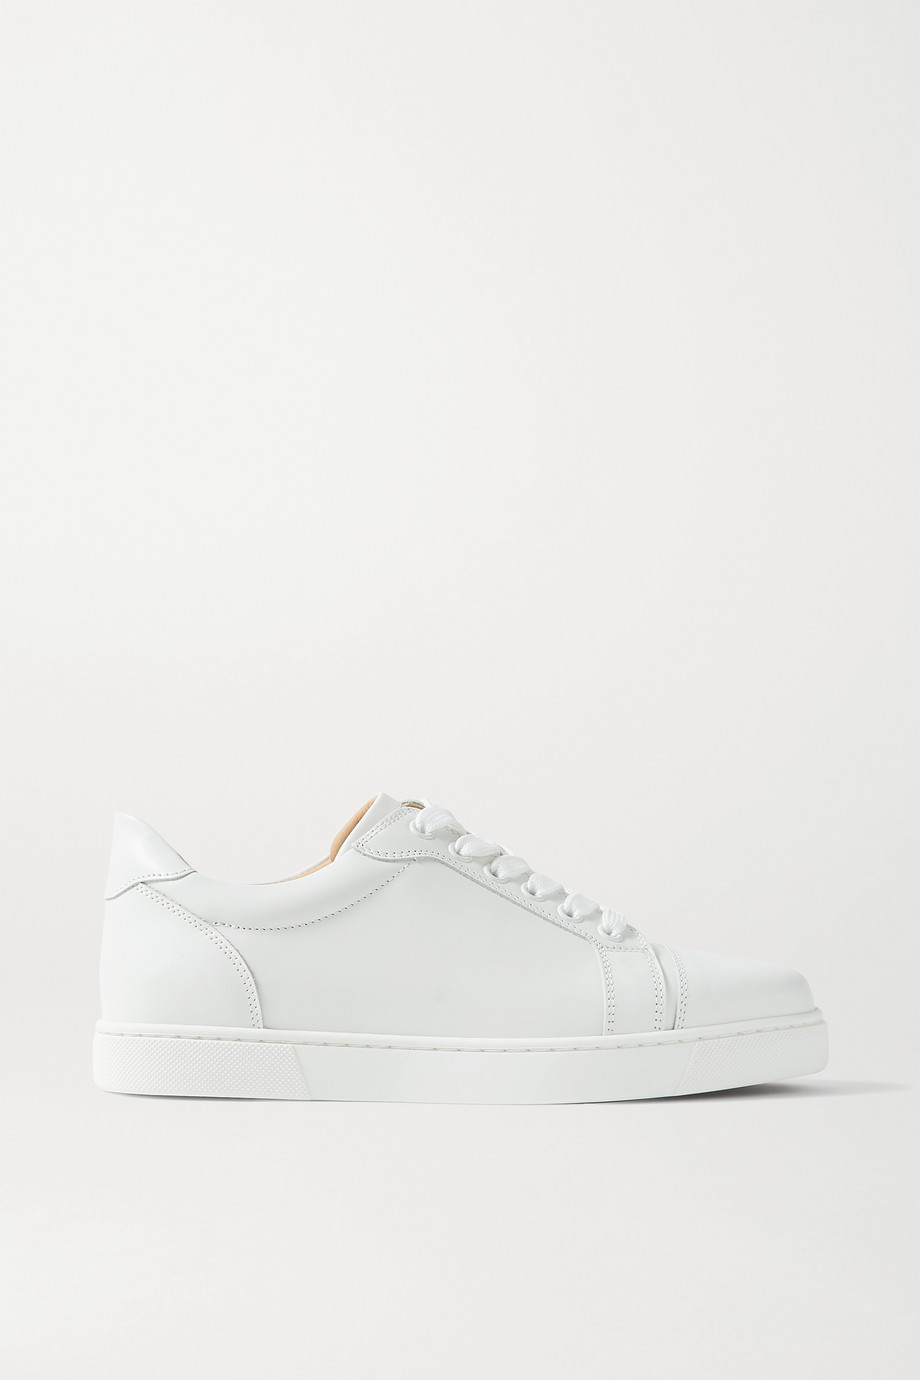 CHRISTIAN LOUBOUTIN Vieira leather sneakers